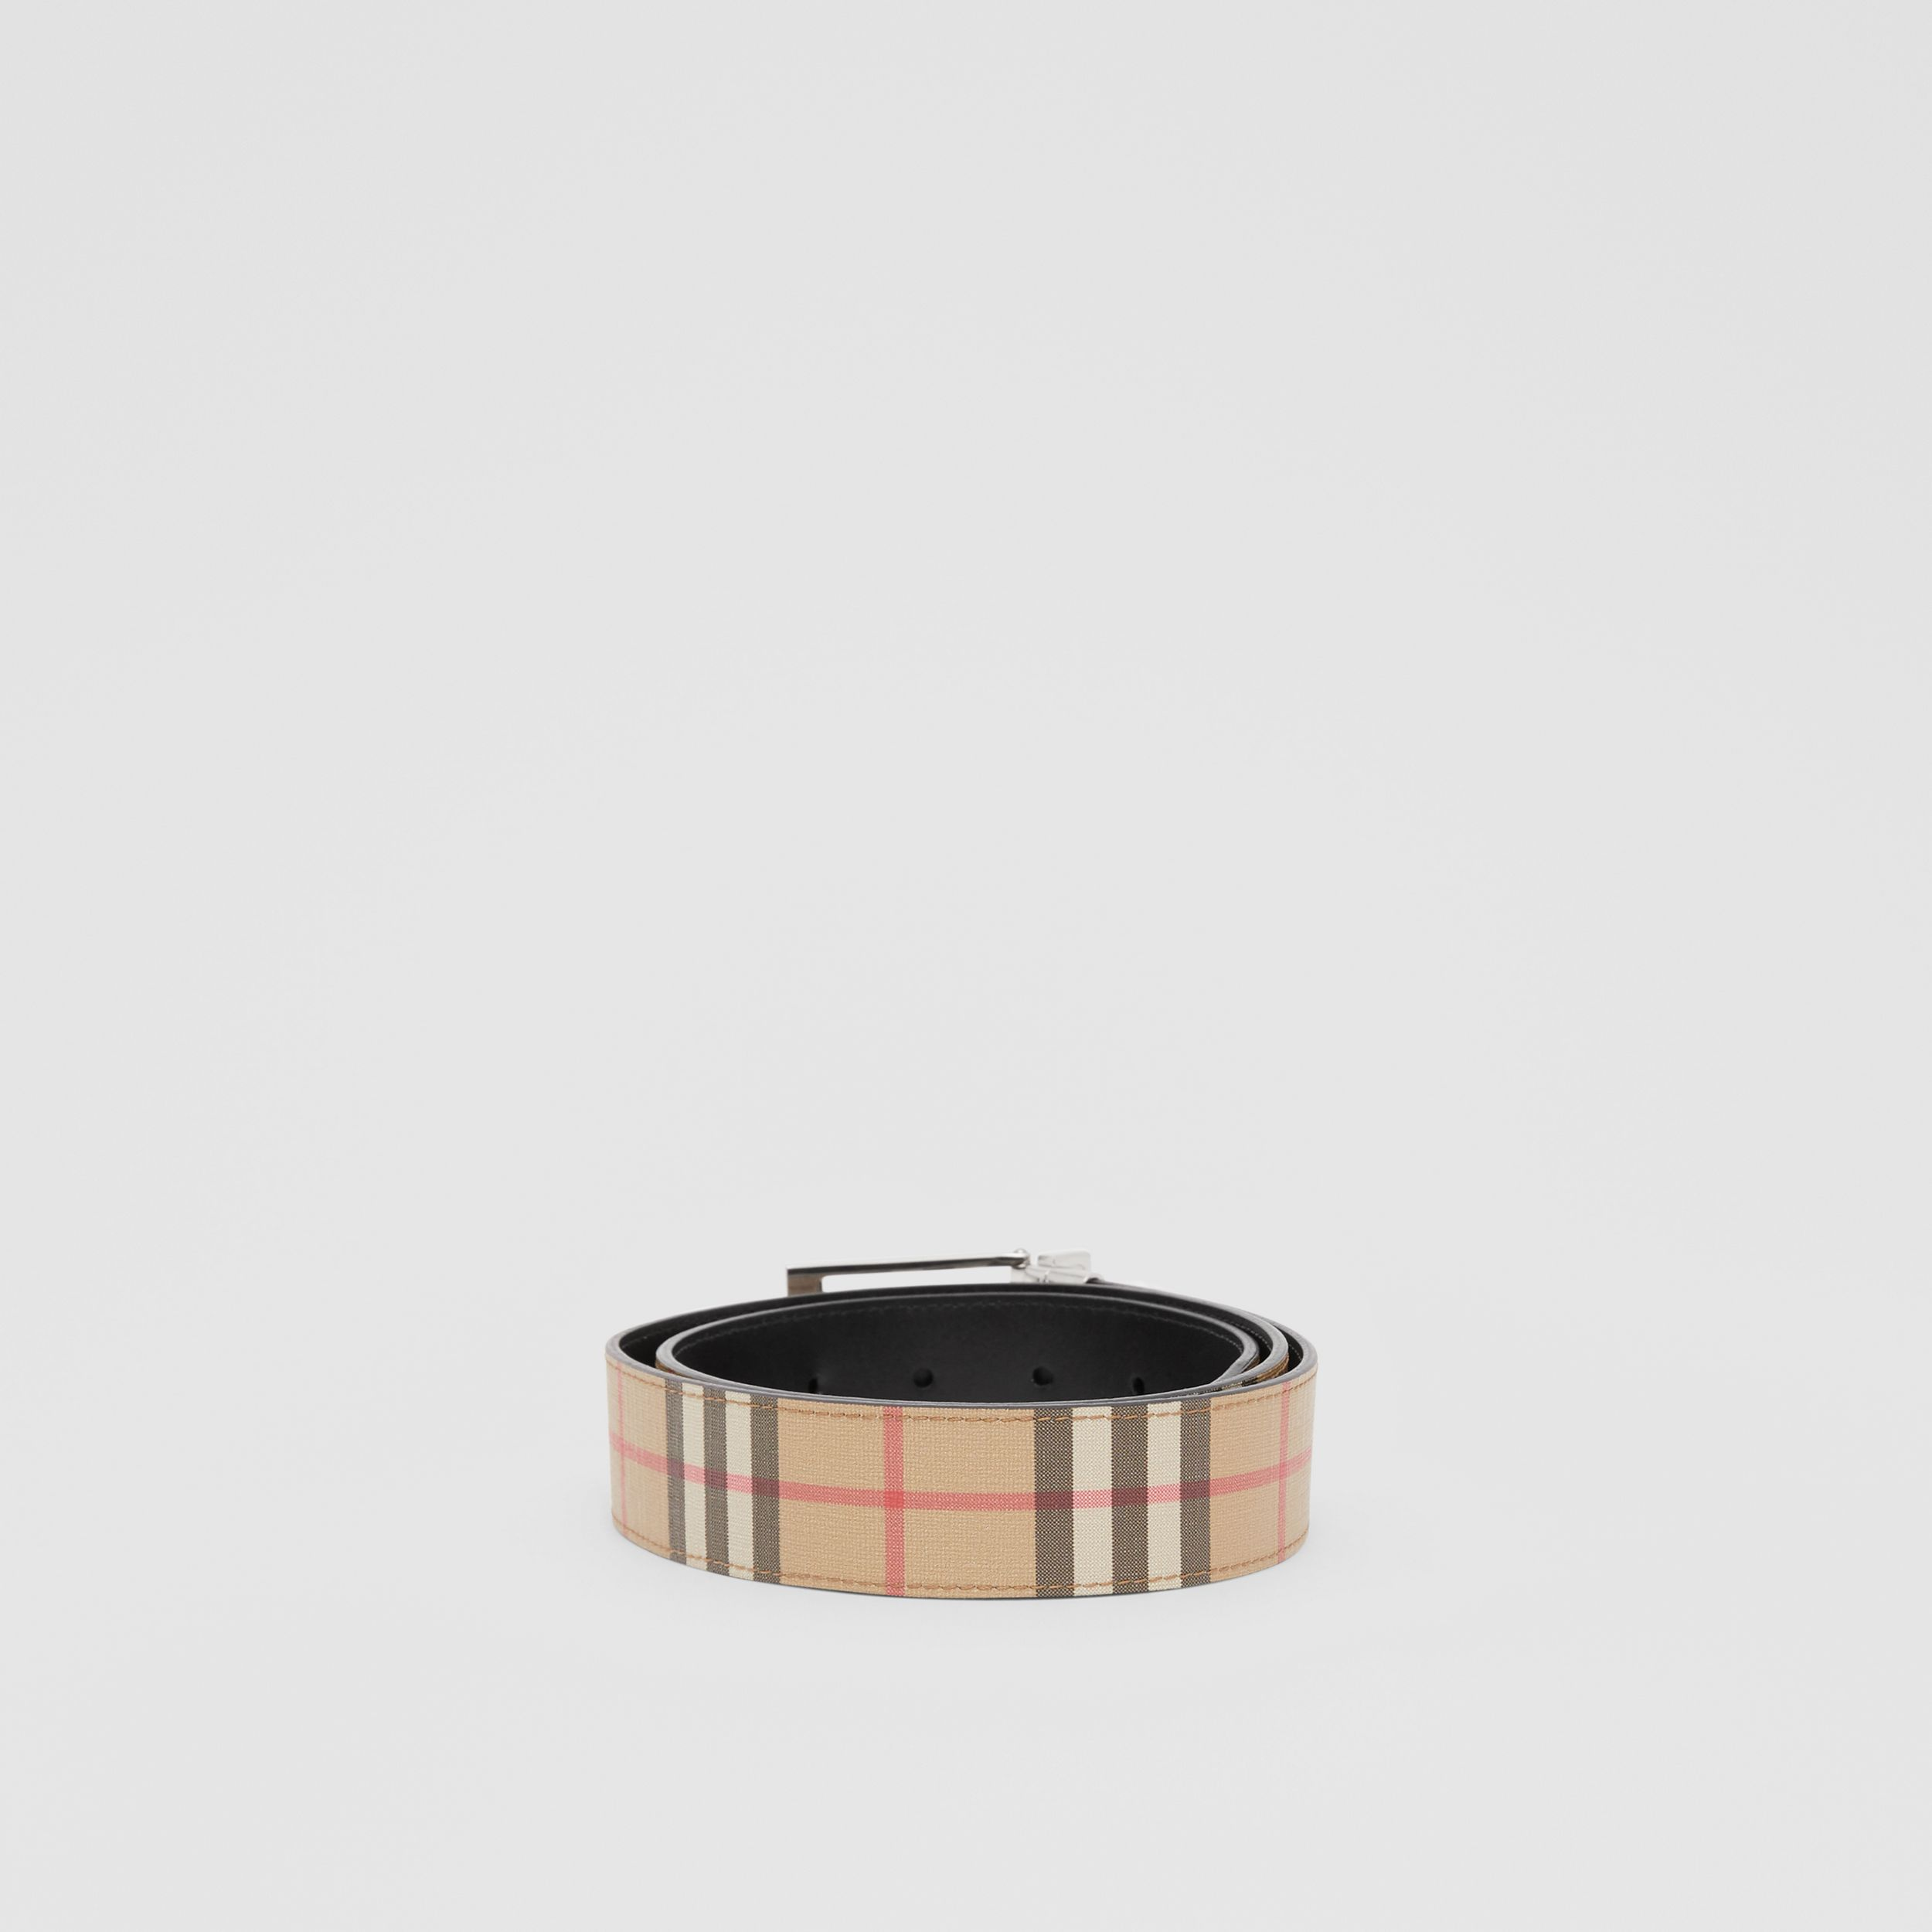 Reversible Vintage Check E-canvas and Leather Belt in Archive Beige/black - Men | Burberry - 4